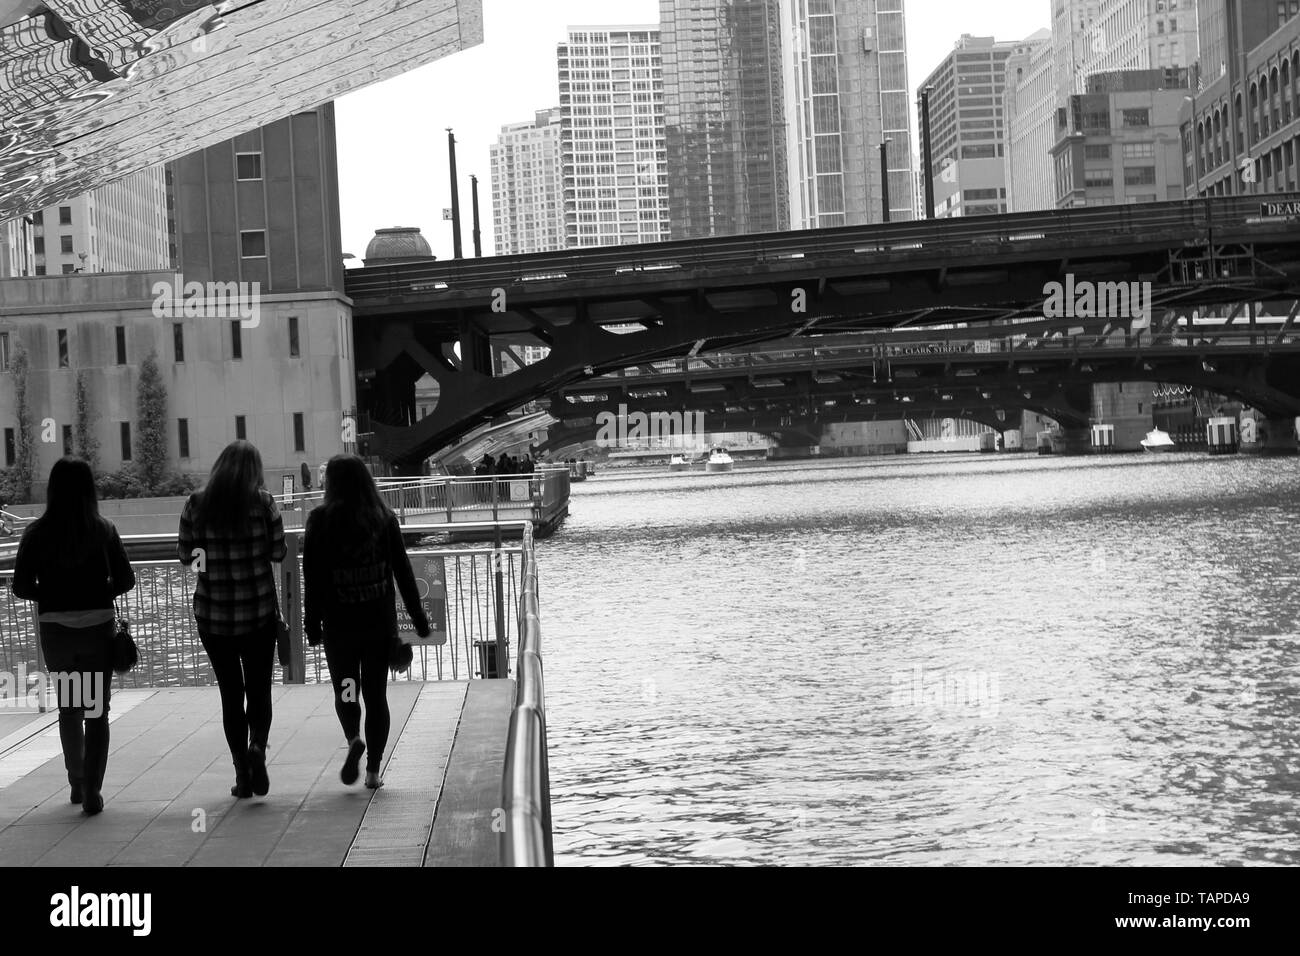 Three people walking on the Riverwalk on the Chicago River downtown in the Loop, Chicago, Illinois, USA - Stock Image